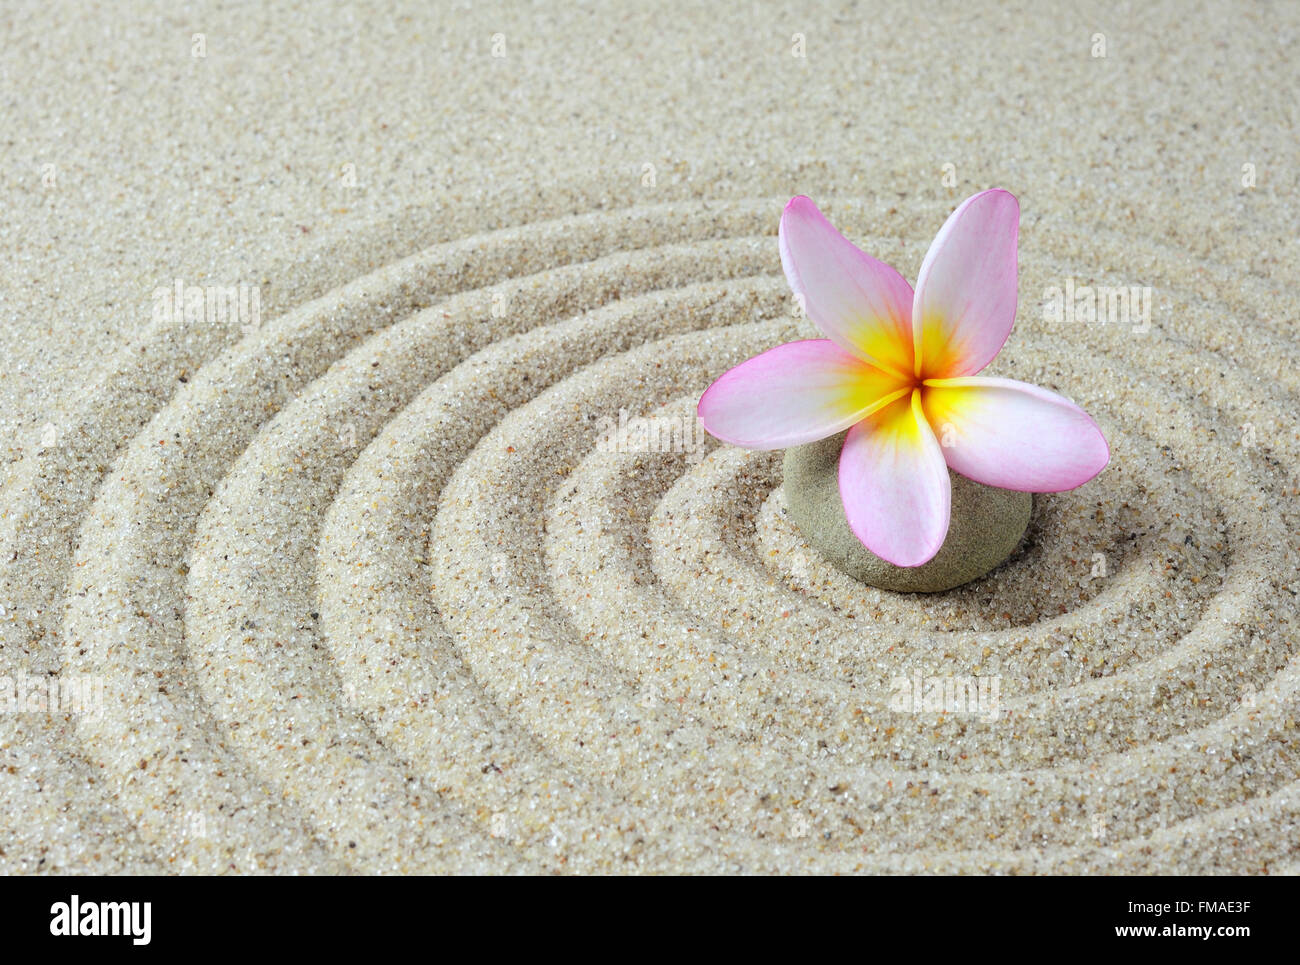 zen stones with frangipani flower with sand background - Stock Image